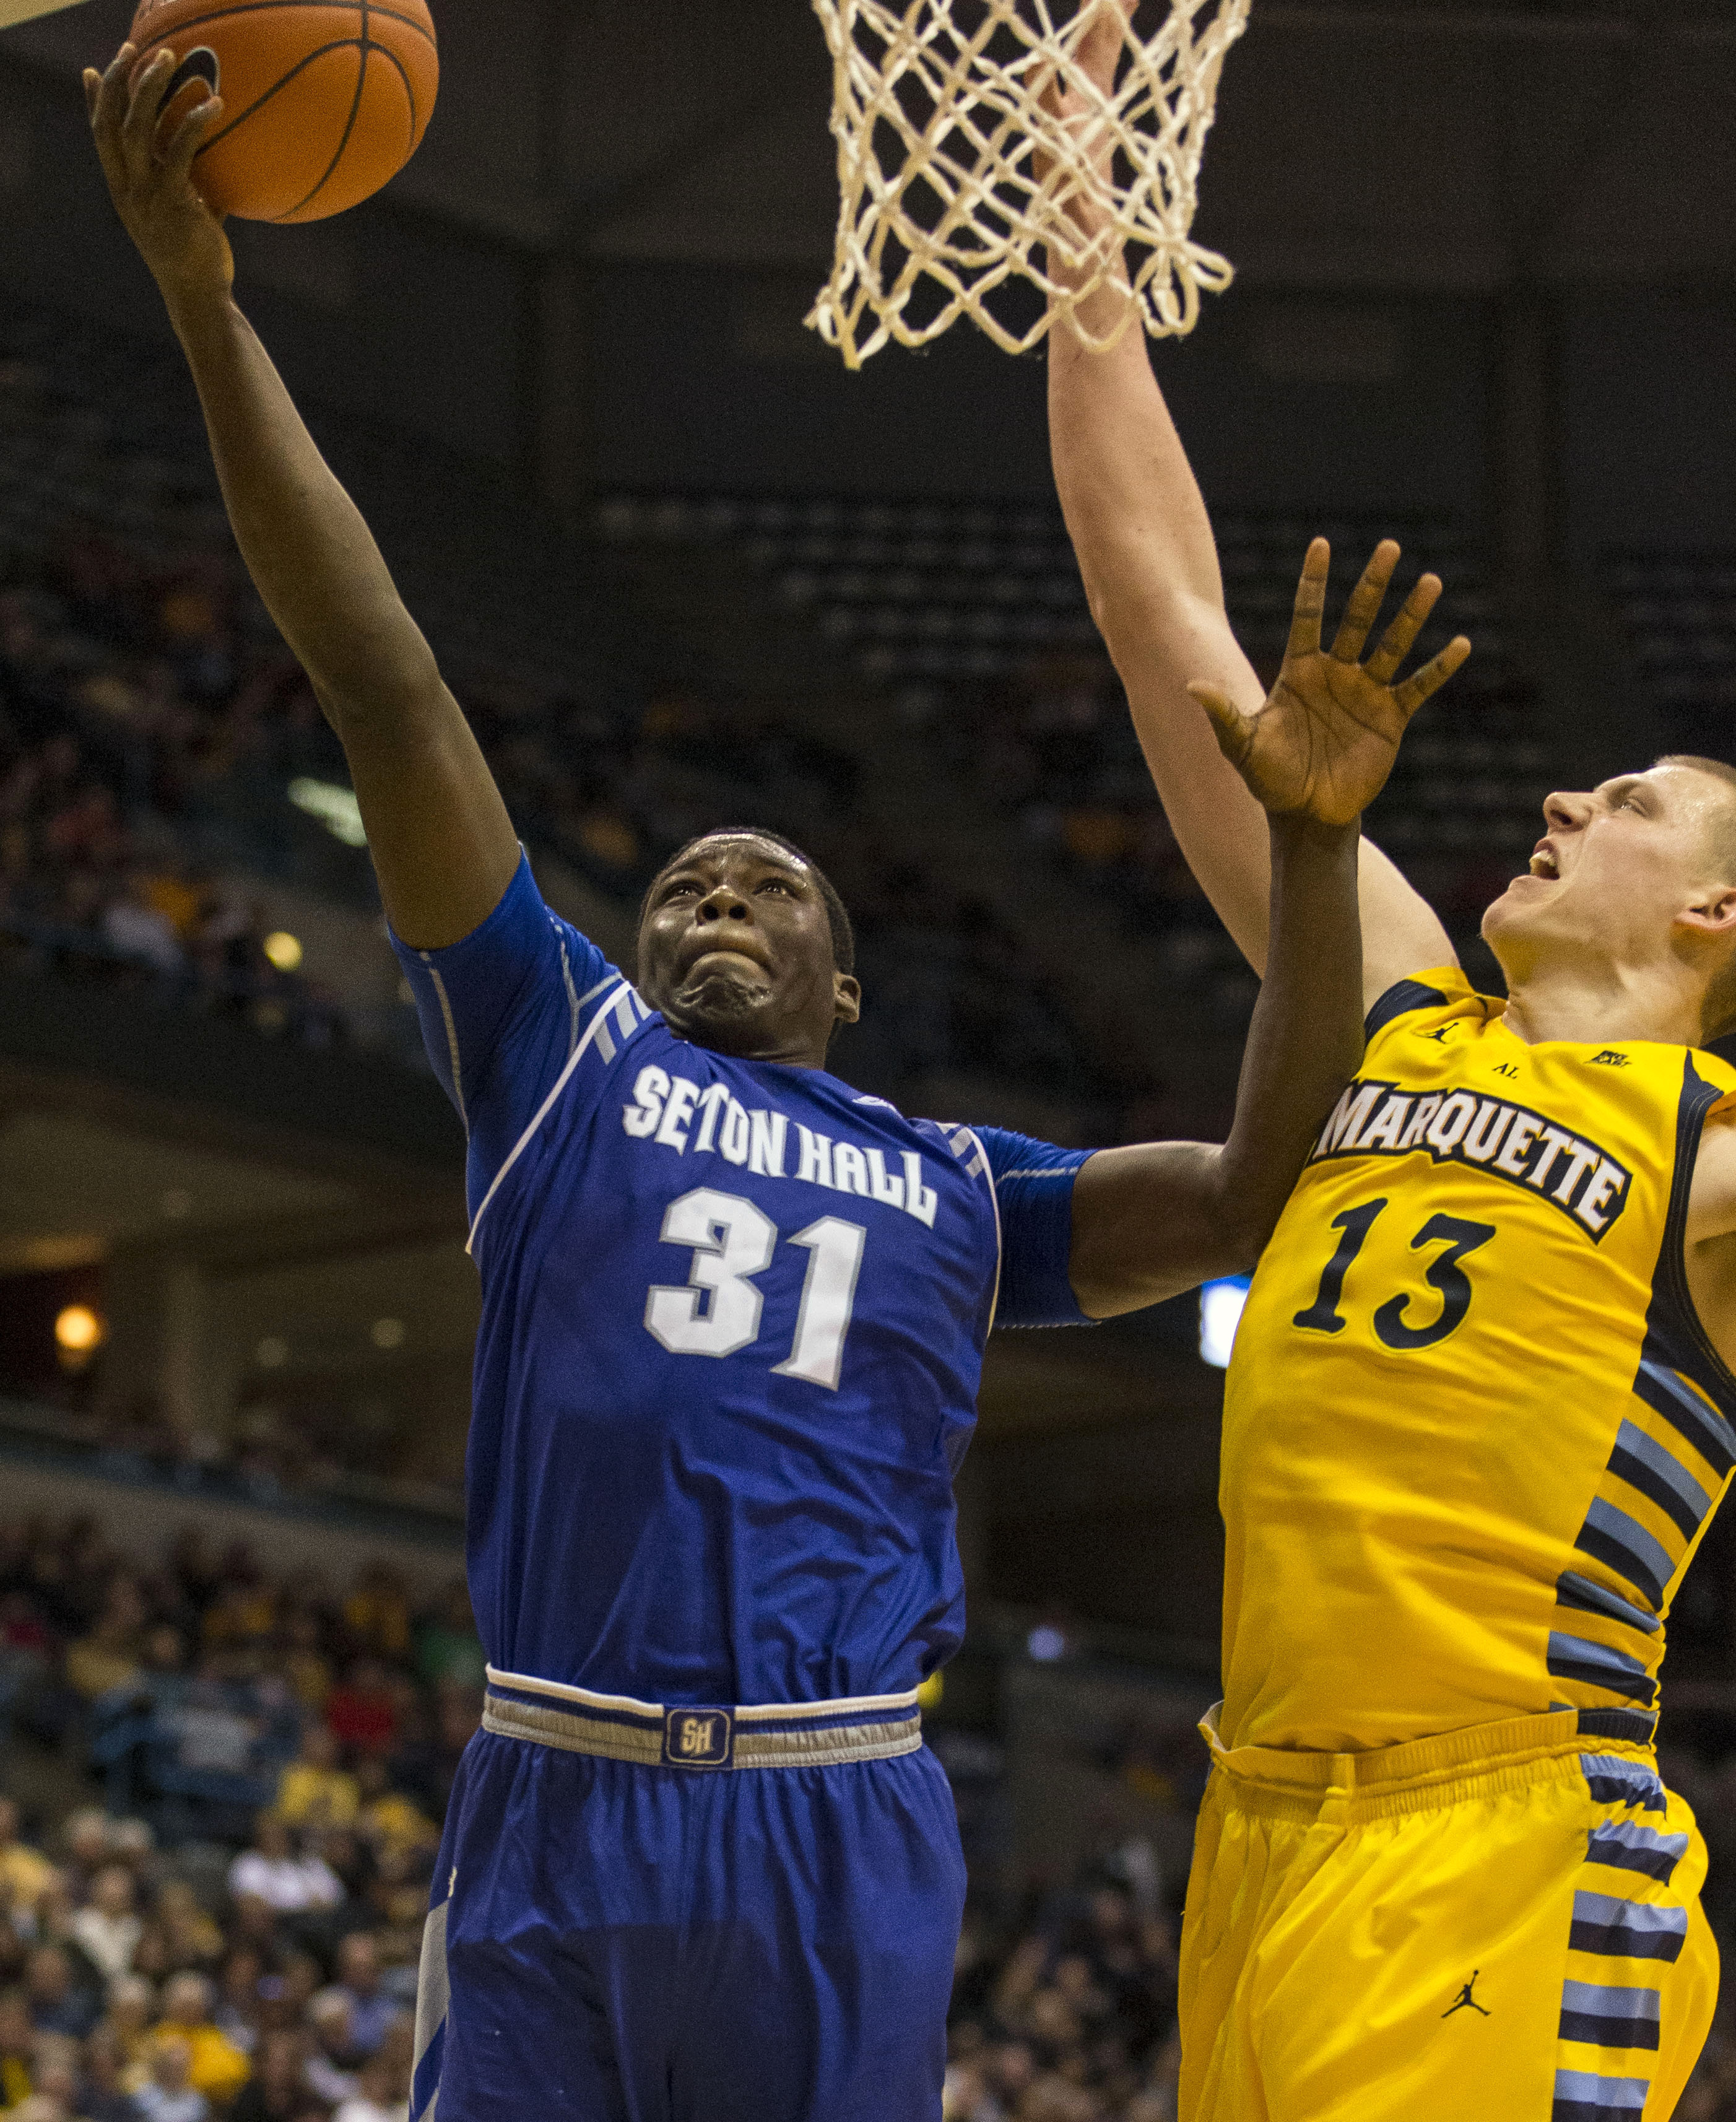 Seton Hall's Angel Delgado (31) shoots as Marquette's Henry Ellenson defends during the second half of an NCAA college basketball game Wednesday, Dec. 30, 2015, in Milwaukee. (AP Photo/Tom Lynn)